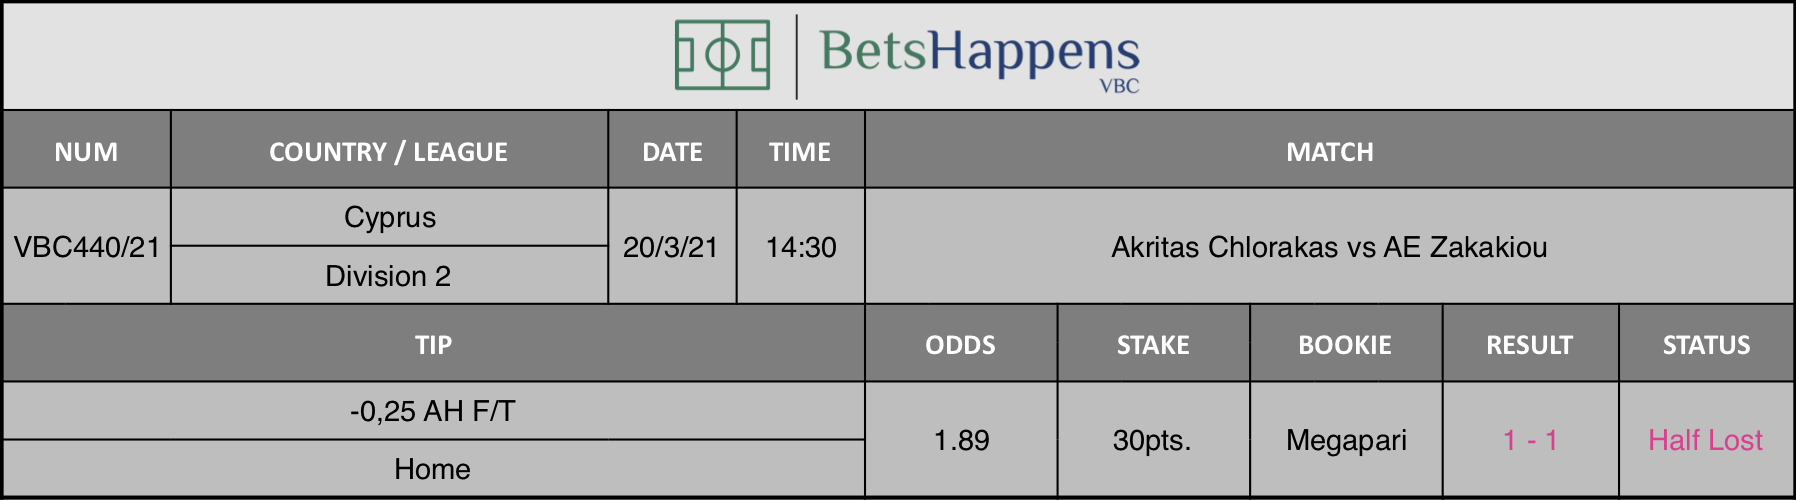 Results of our tip for the Akritas Chlorakas vs AE Zakakiou match where -0,25 AH F/T Home is recommended.